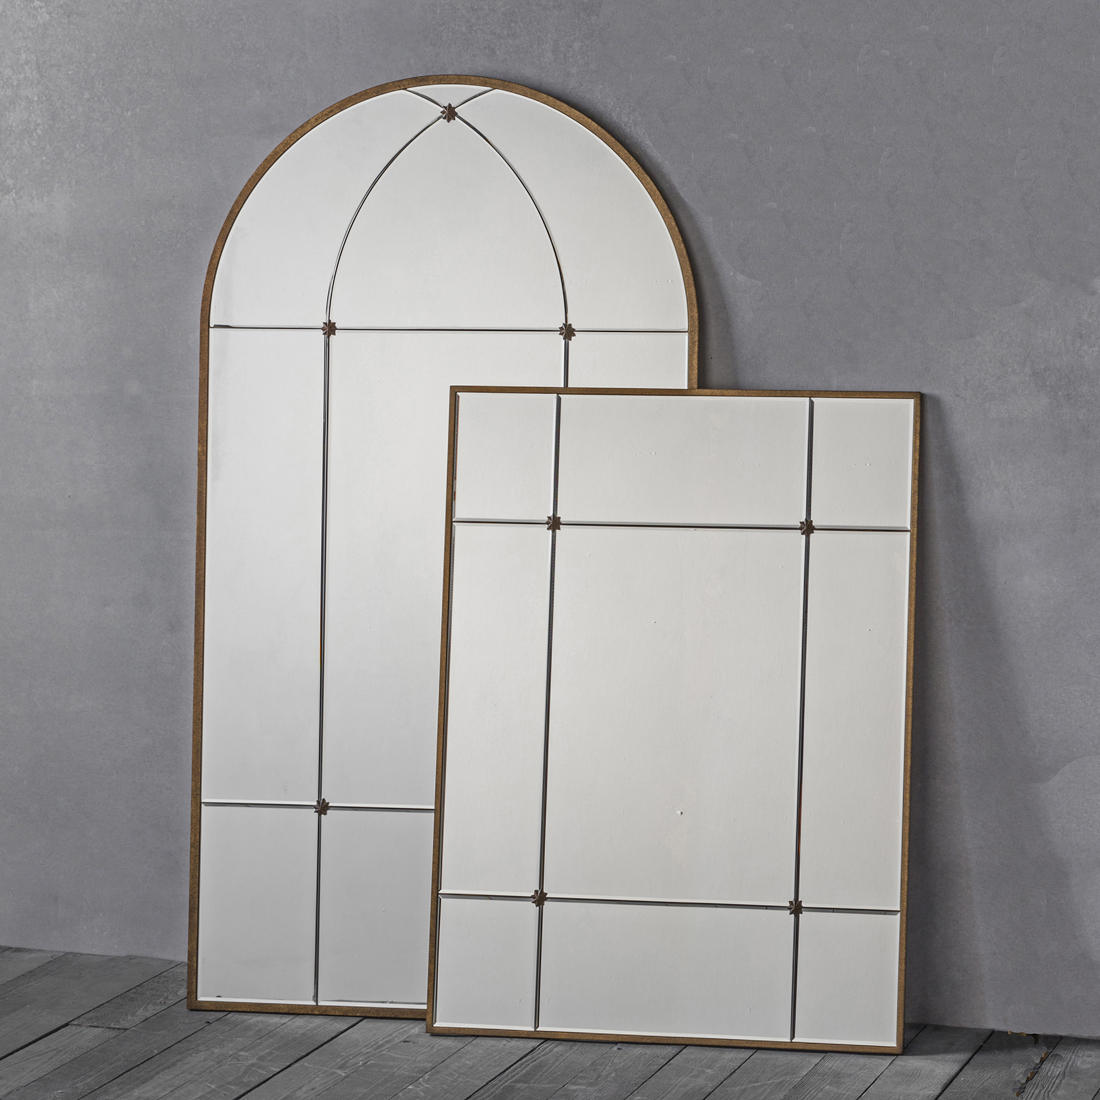 Gold Window Wall Mirror – Arch Or Rectangle Throughout Wall Mirrors (Image 9 of 20)